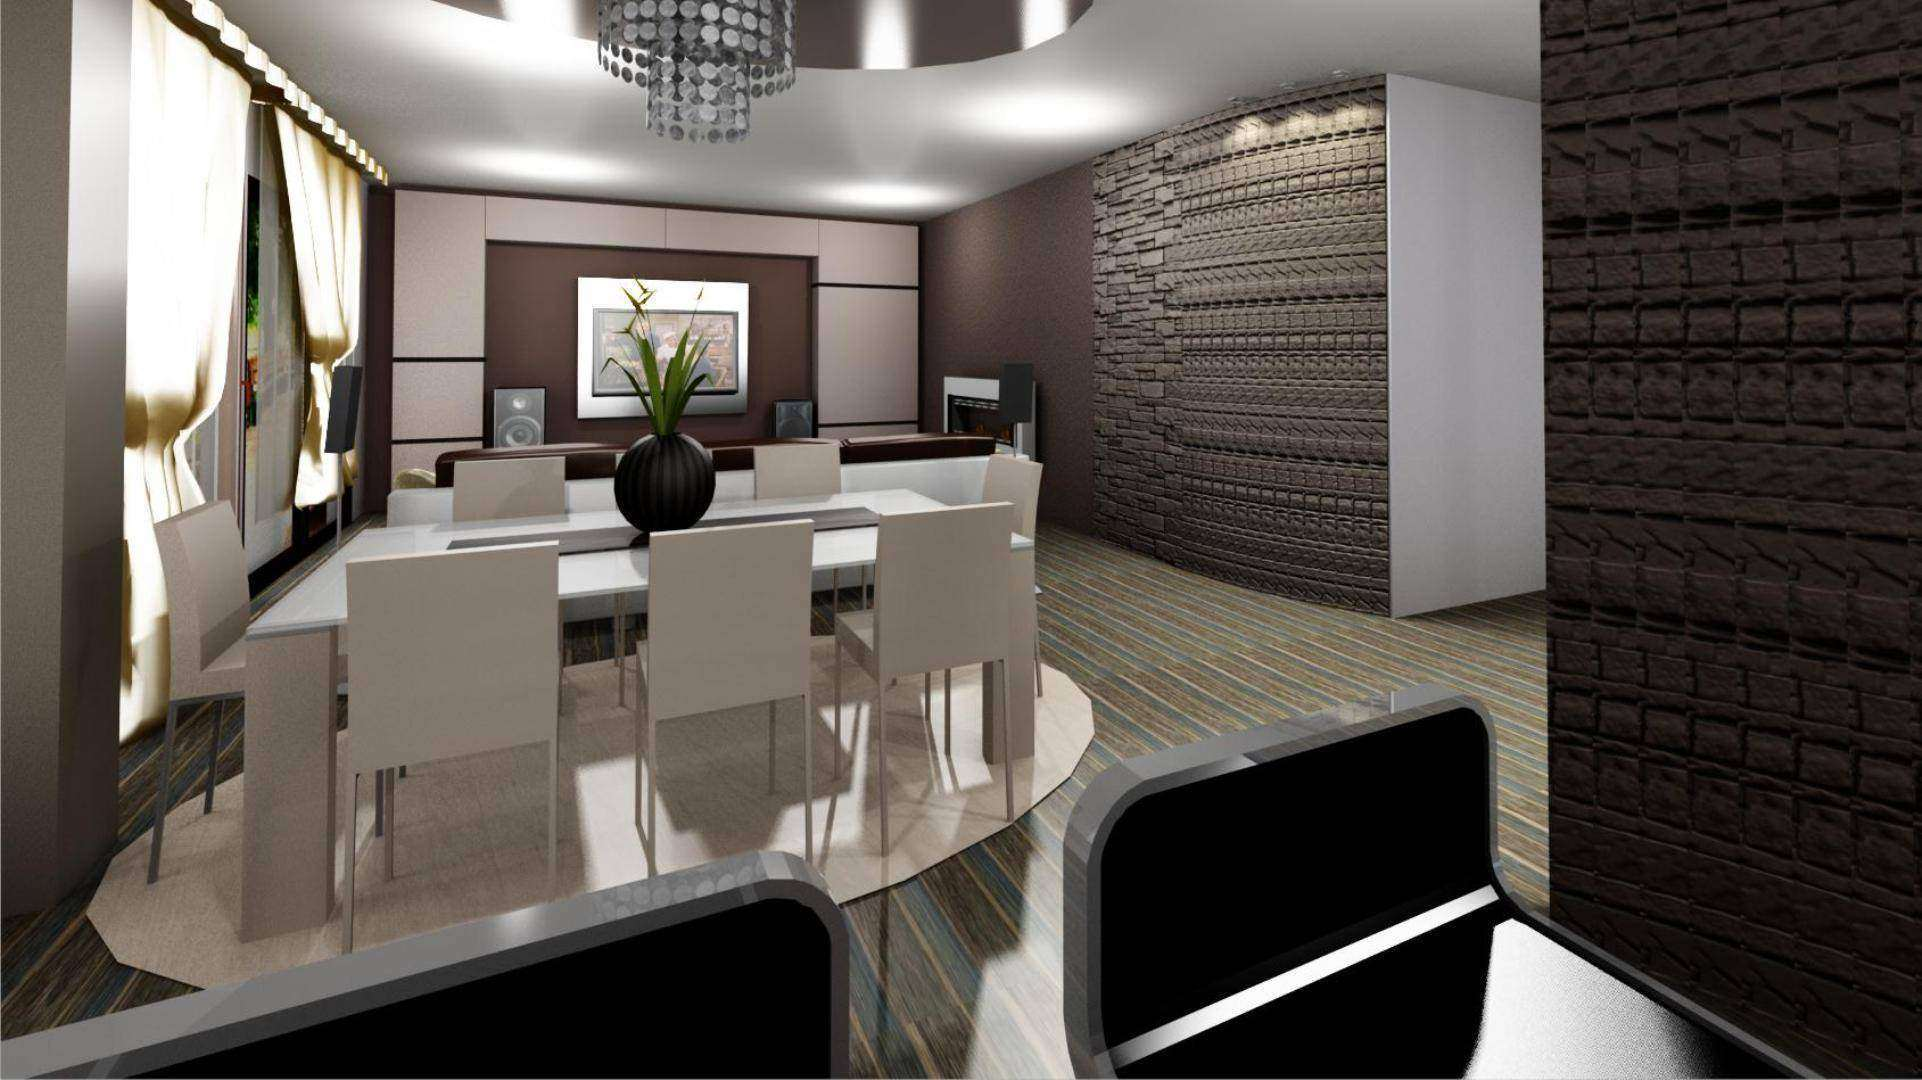 <a href=&quot;proeict 3d mobila la comanda&quot;>plan 3d open space living cu bucatarie <img src='https://www.unican.ro/wp-content/themes/vita/img/dreapta.png' class='pull-right hidden-xs' style='margin-right:-10px;margin-top:-10px; max-height:41px'></a>